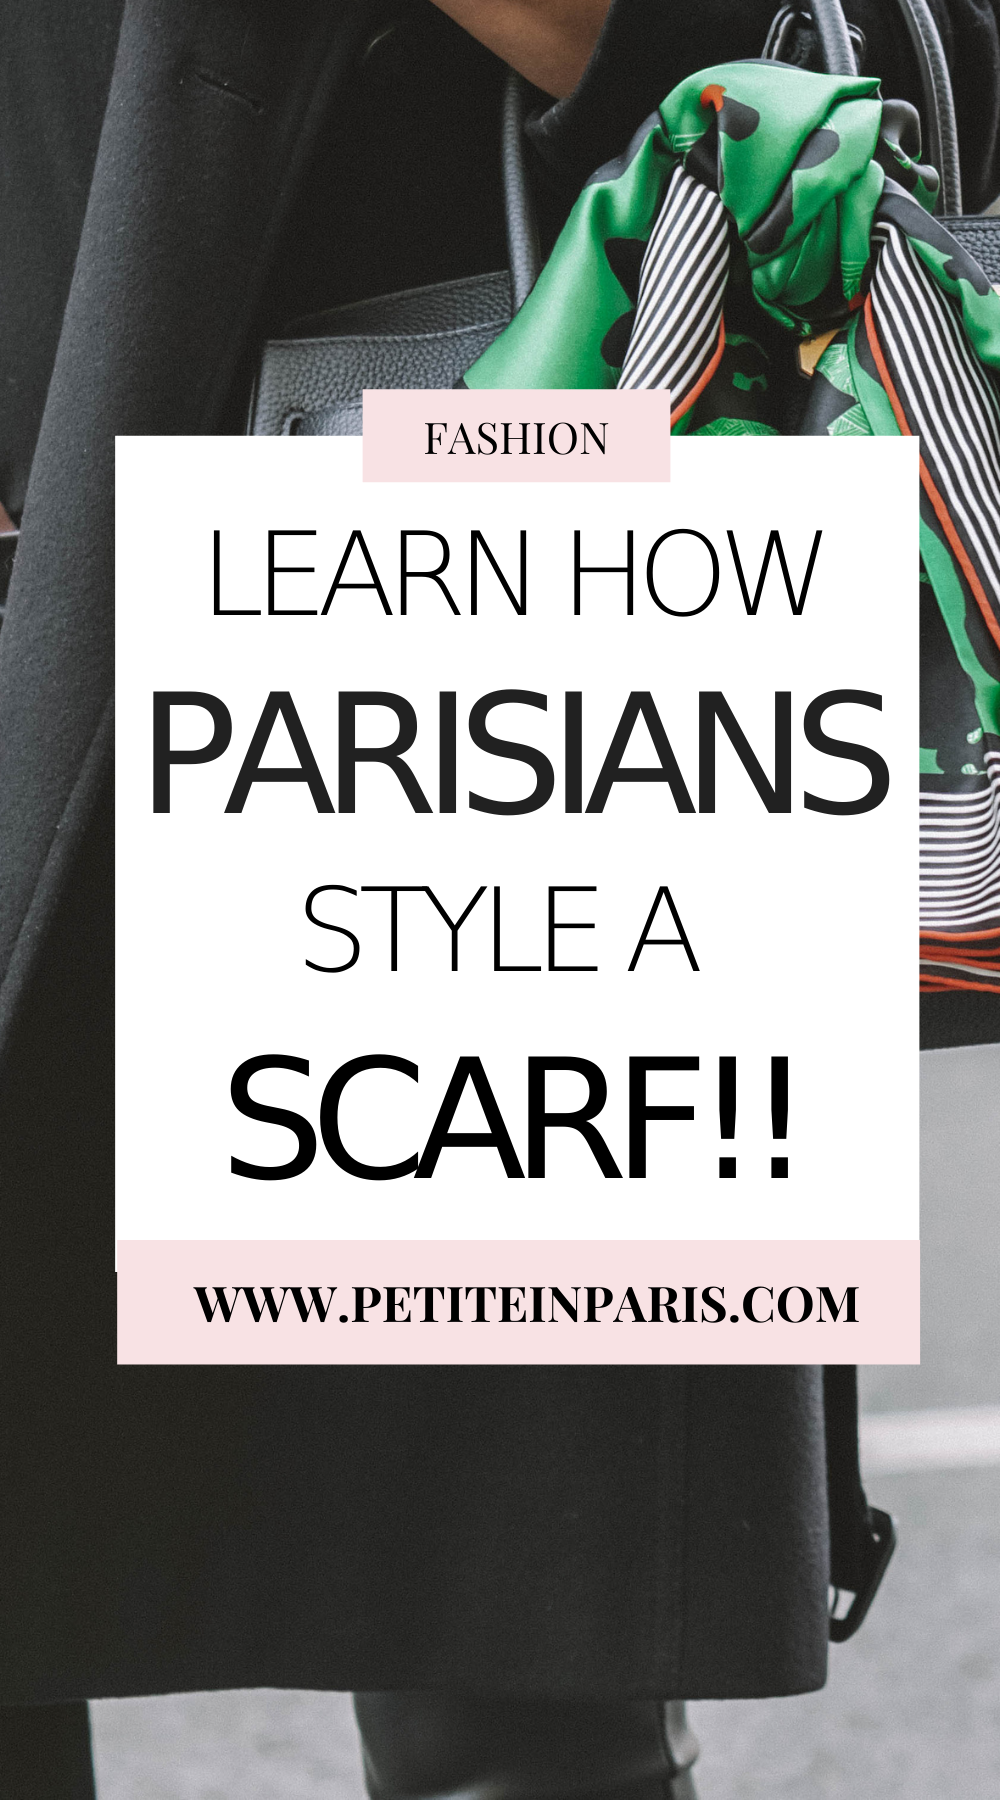 Tips and tricks to mimic how Parisians style a scarf